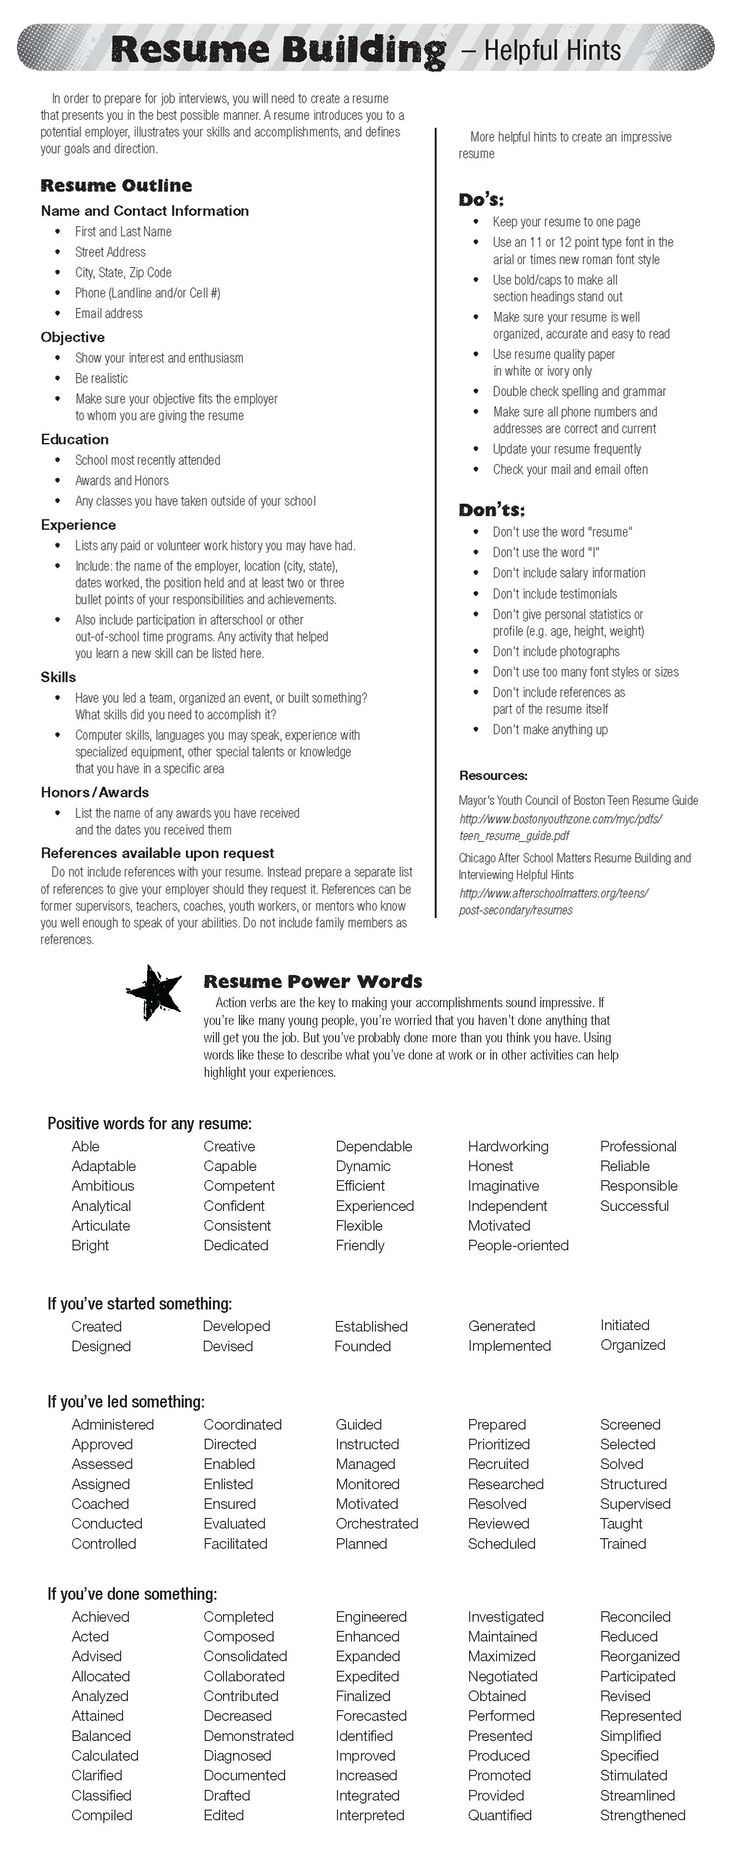 resume building infographic that will help you think through the process of putting together a resume from scratch for us companies